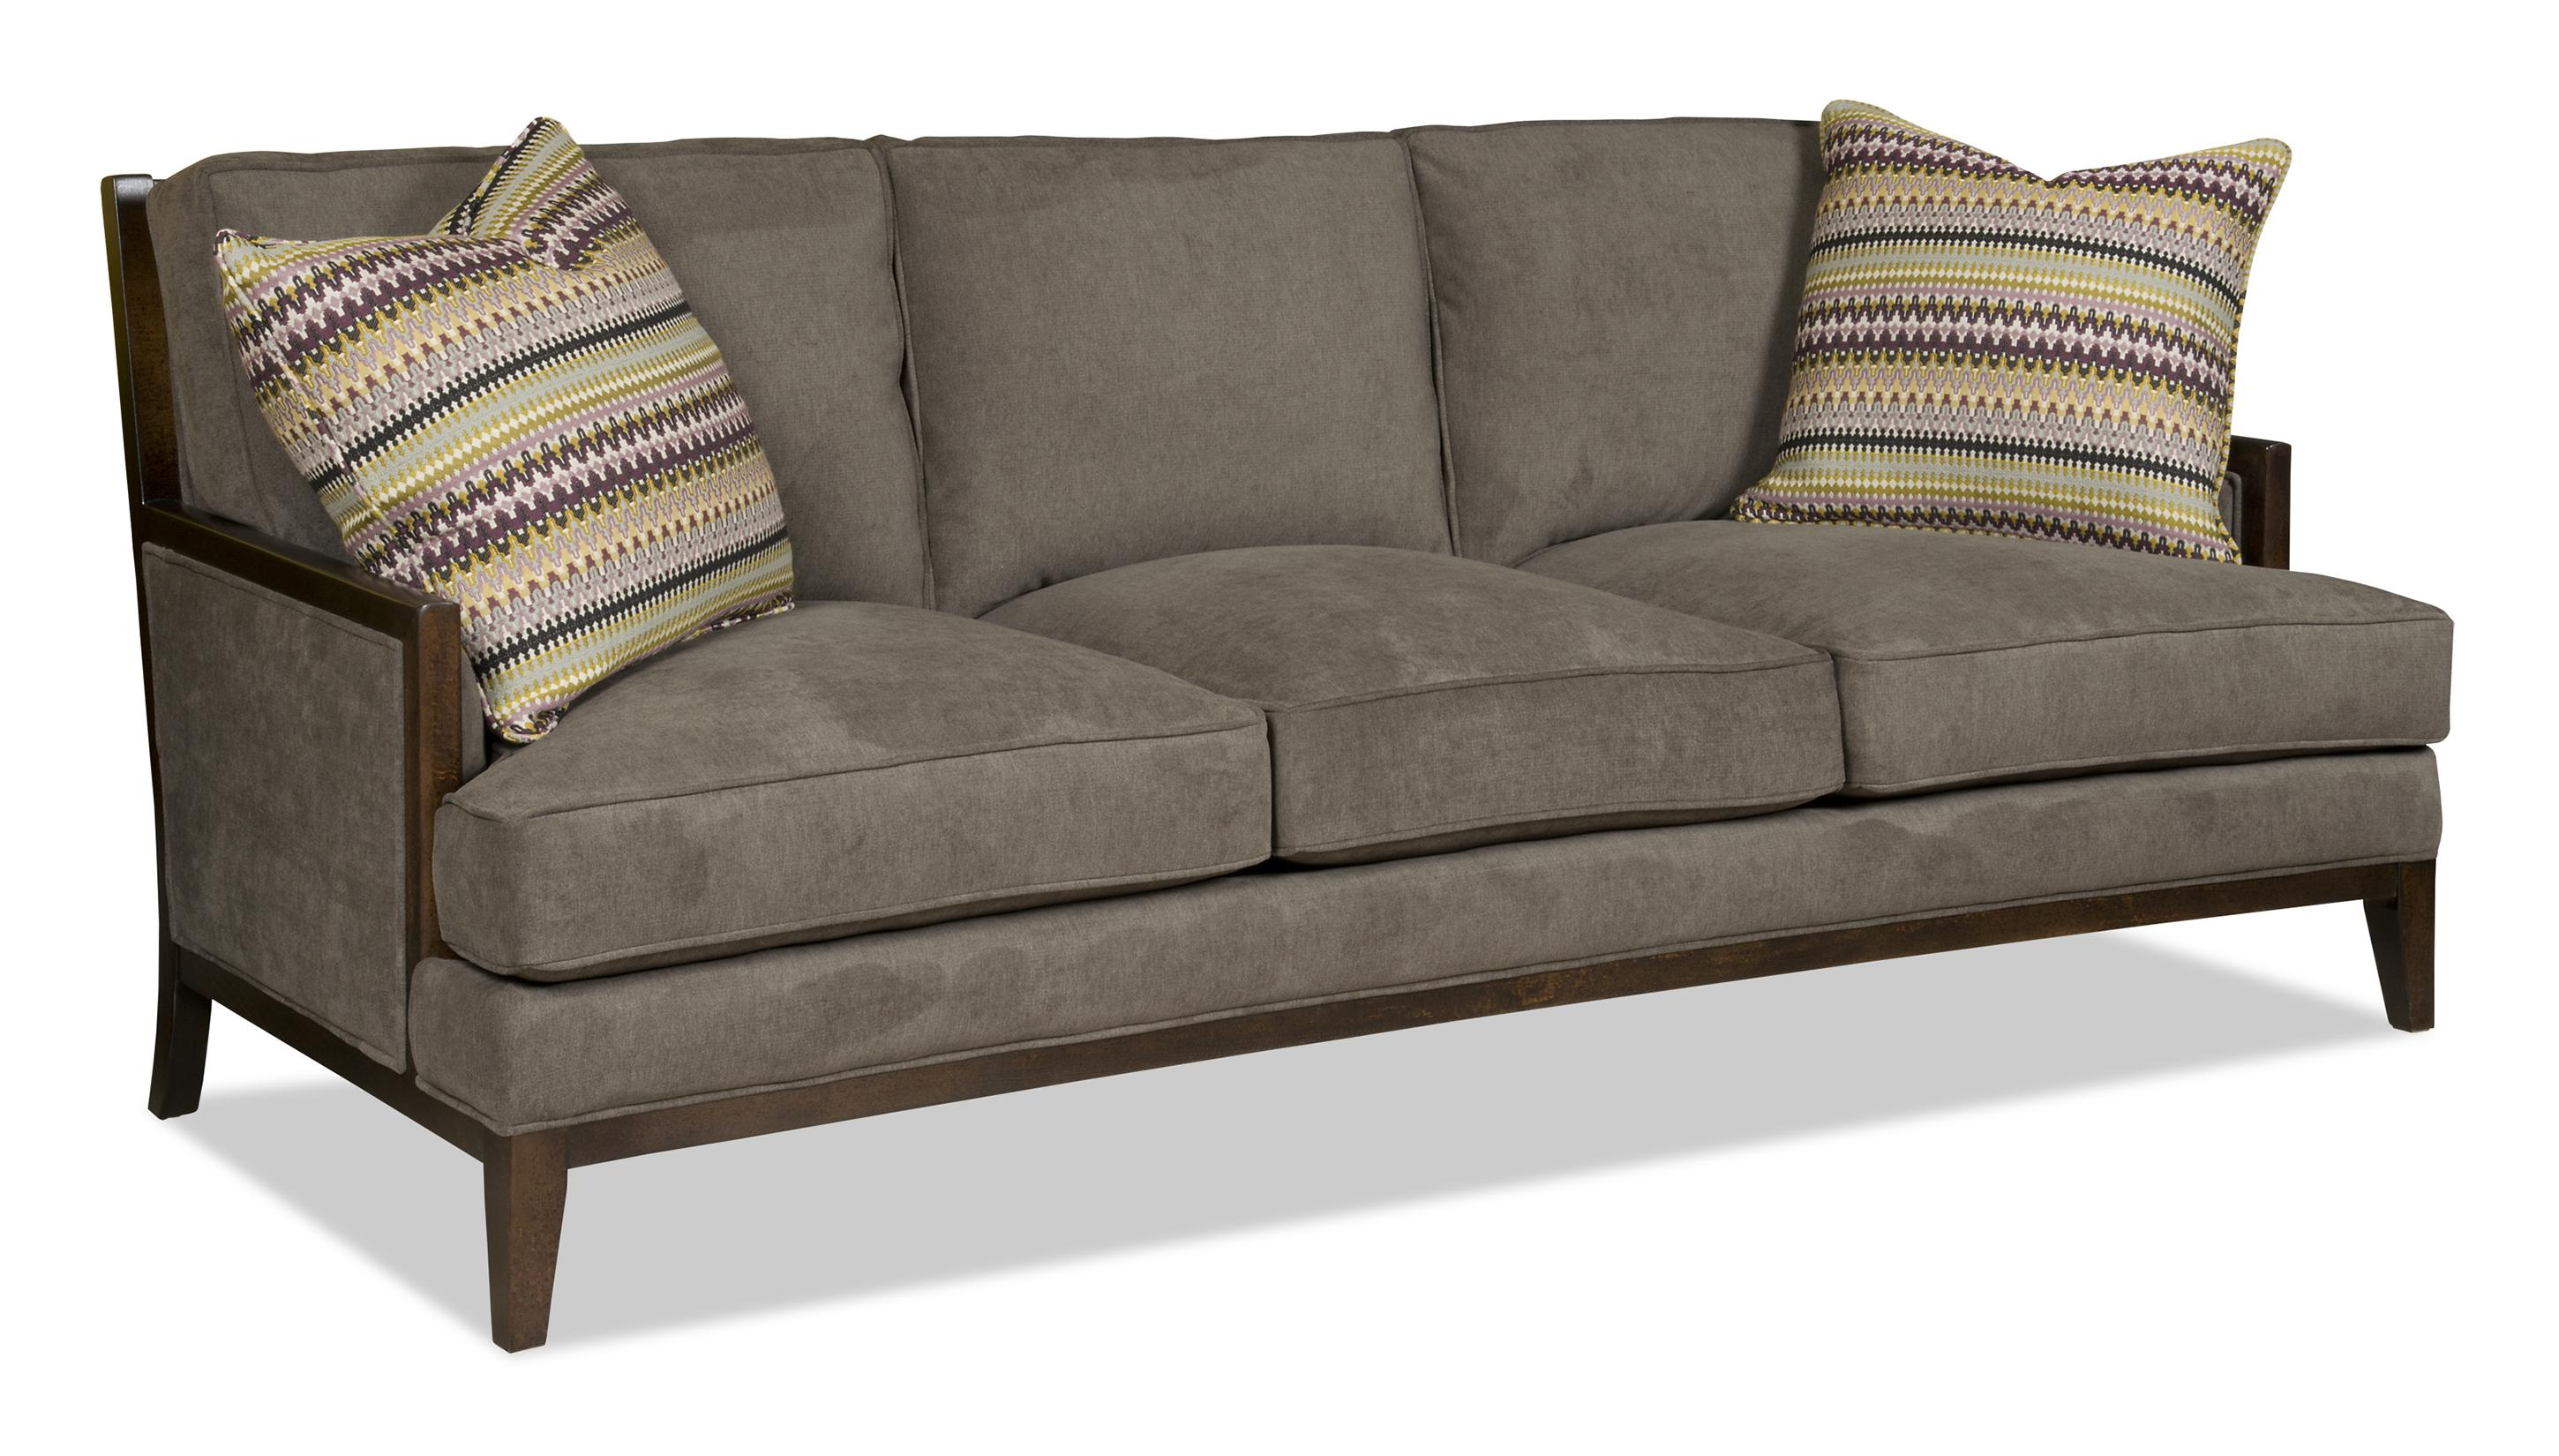 sofa wood frame exposed uk zooey family bed taraba home review